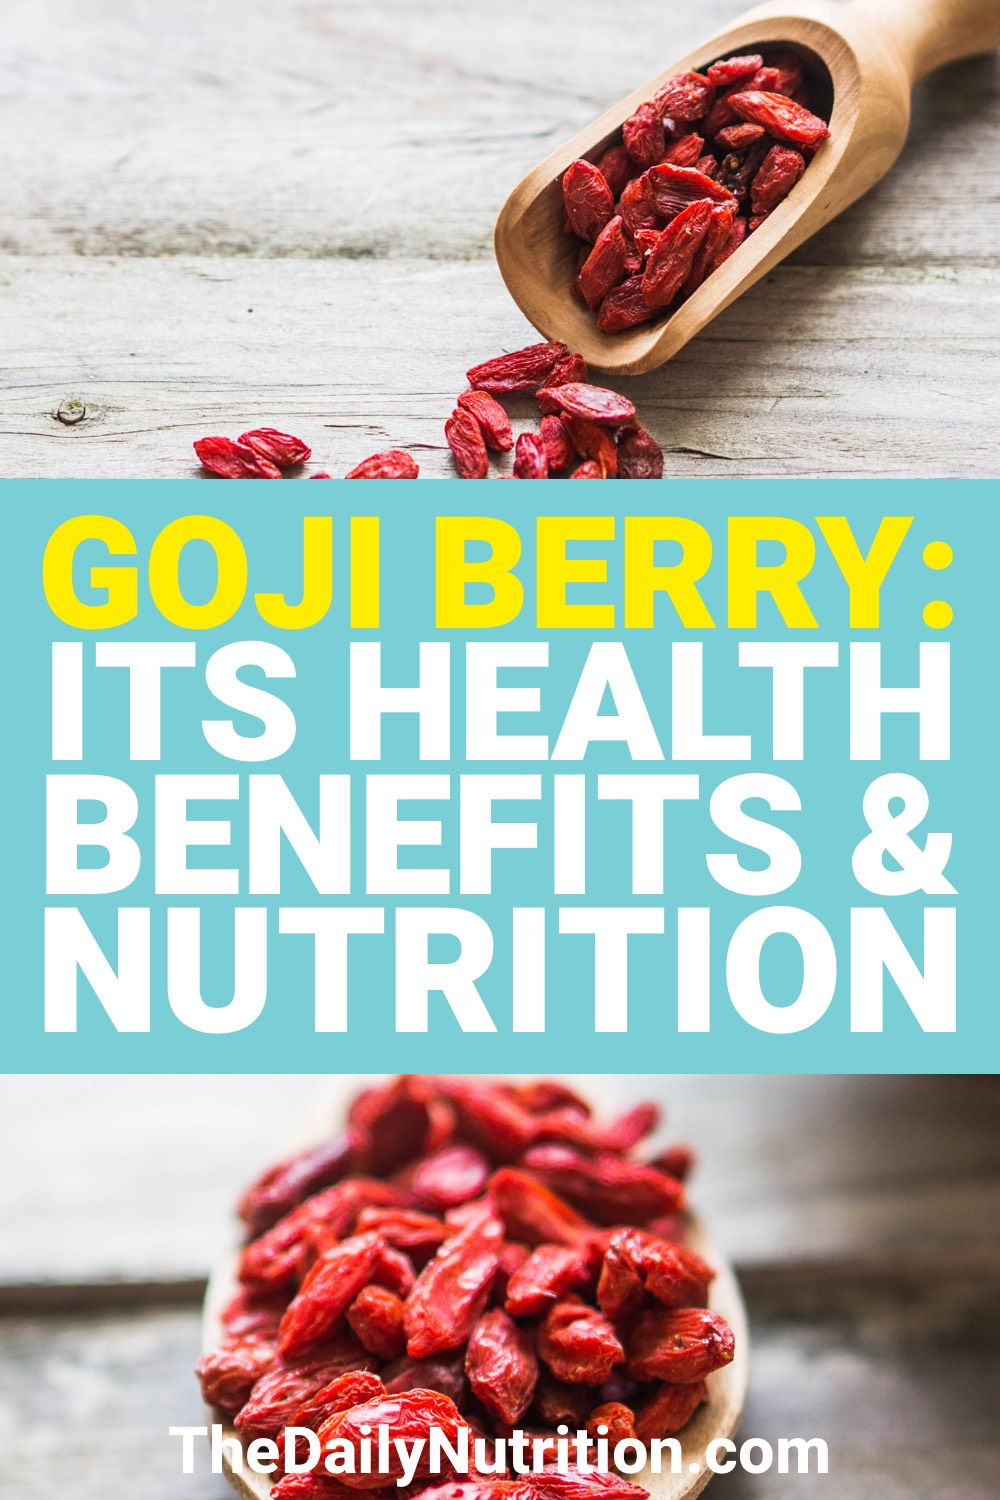 The goji berry is a fruit that packs a powerful punch. For nutrition purposes, everyone should eat them.